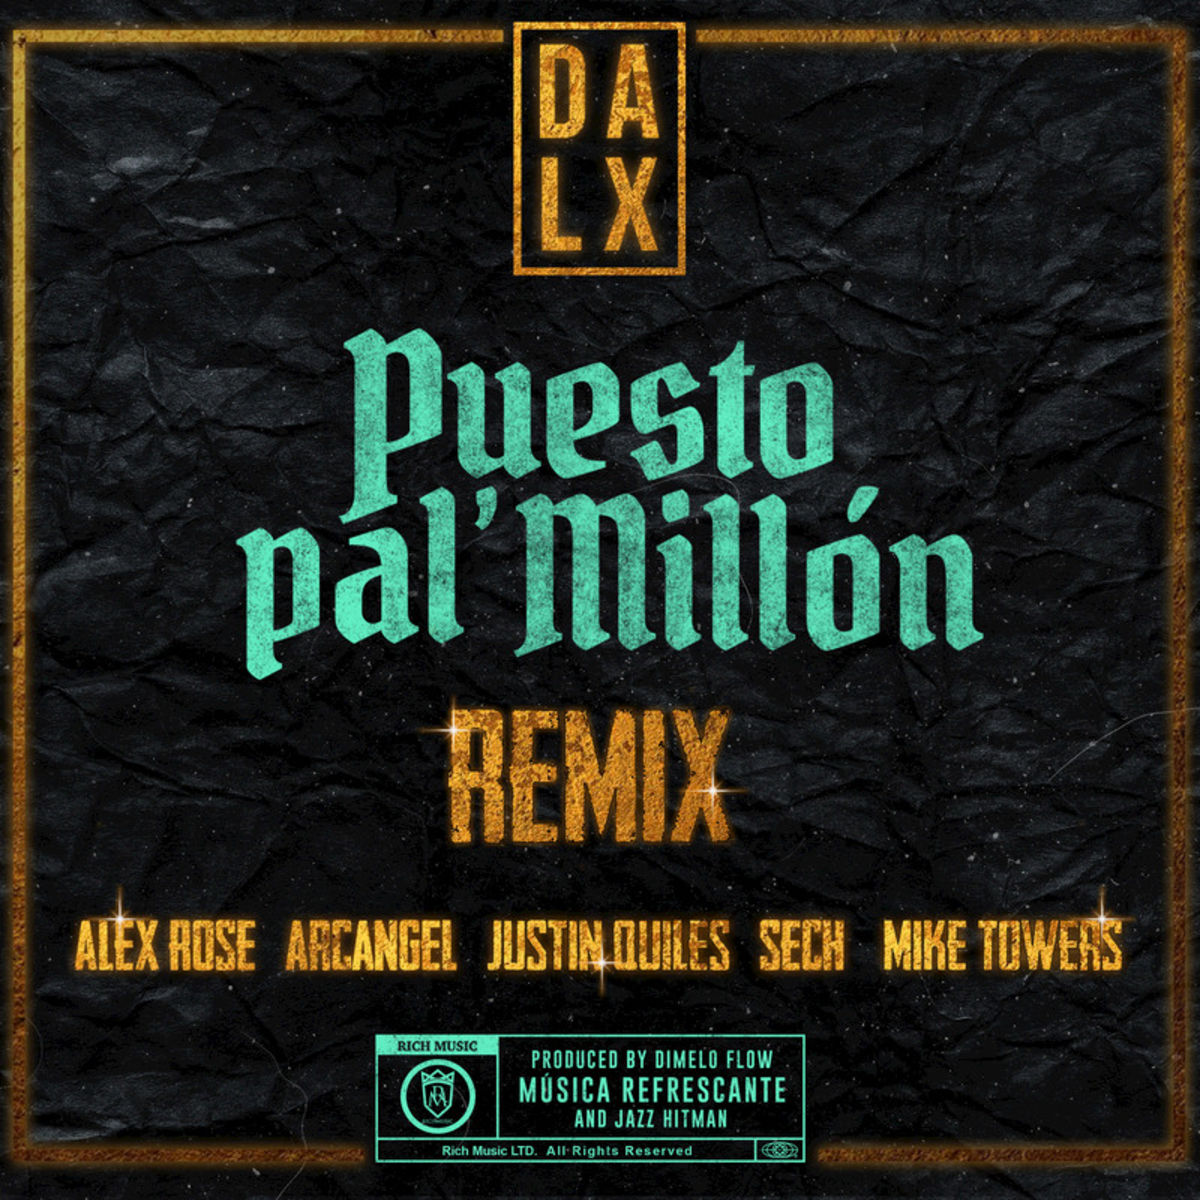 Dalex X Arcangel X Justin Quiles X Alex Rose X Sech X Mike Towers - Puesto pal Millon.mp3